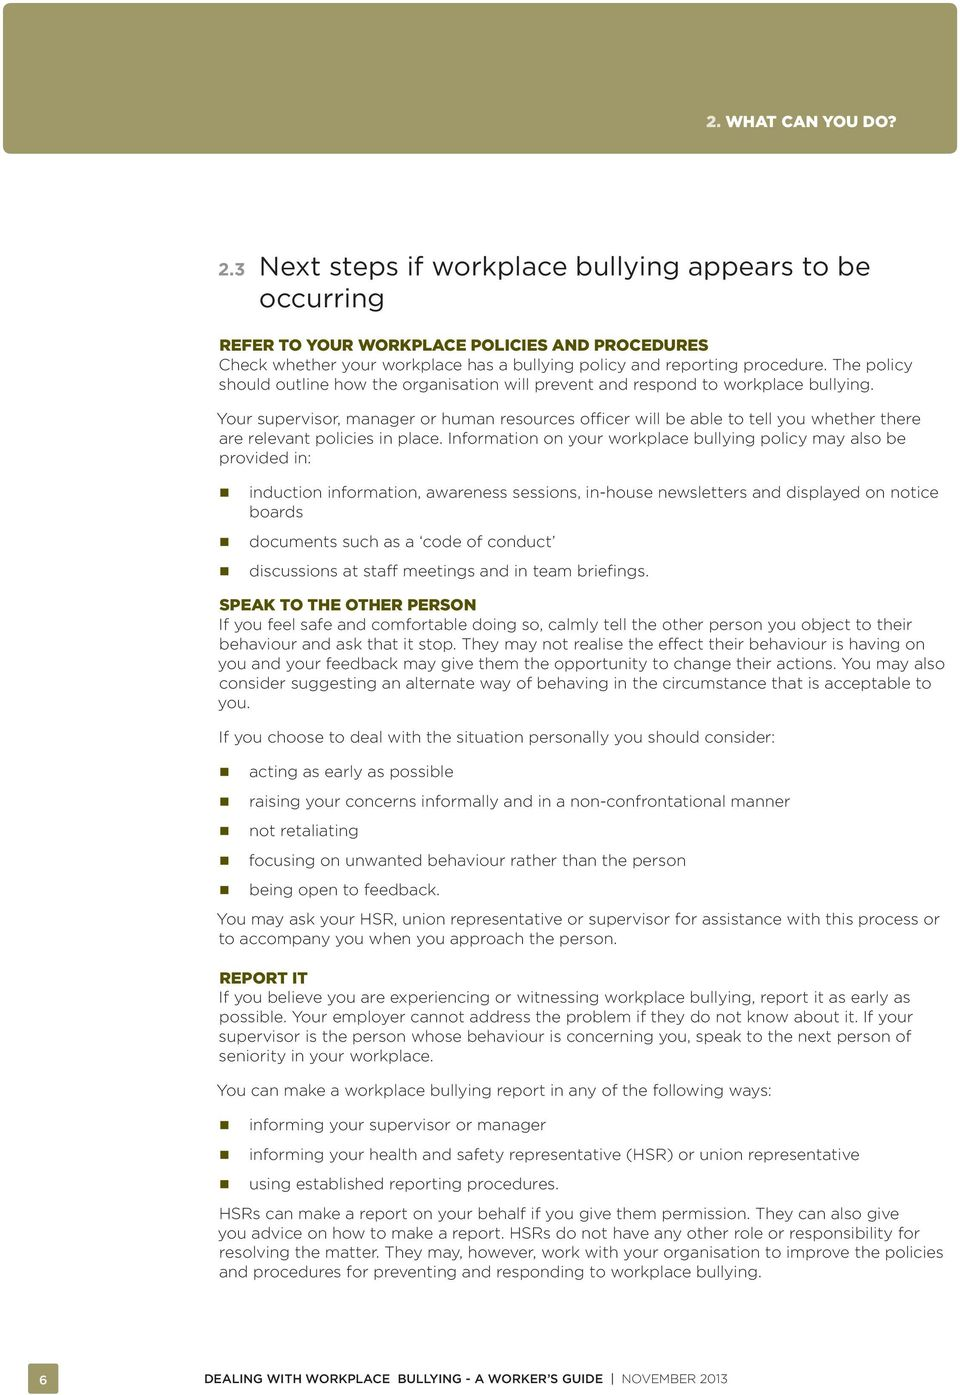 The policy should outline how the organisation will prevent and respond to workplace bullying.